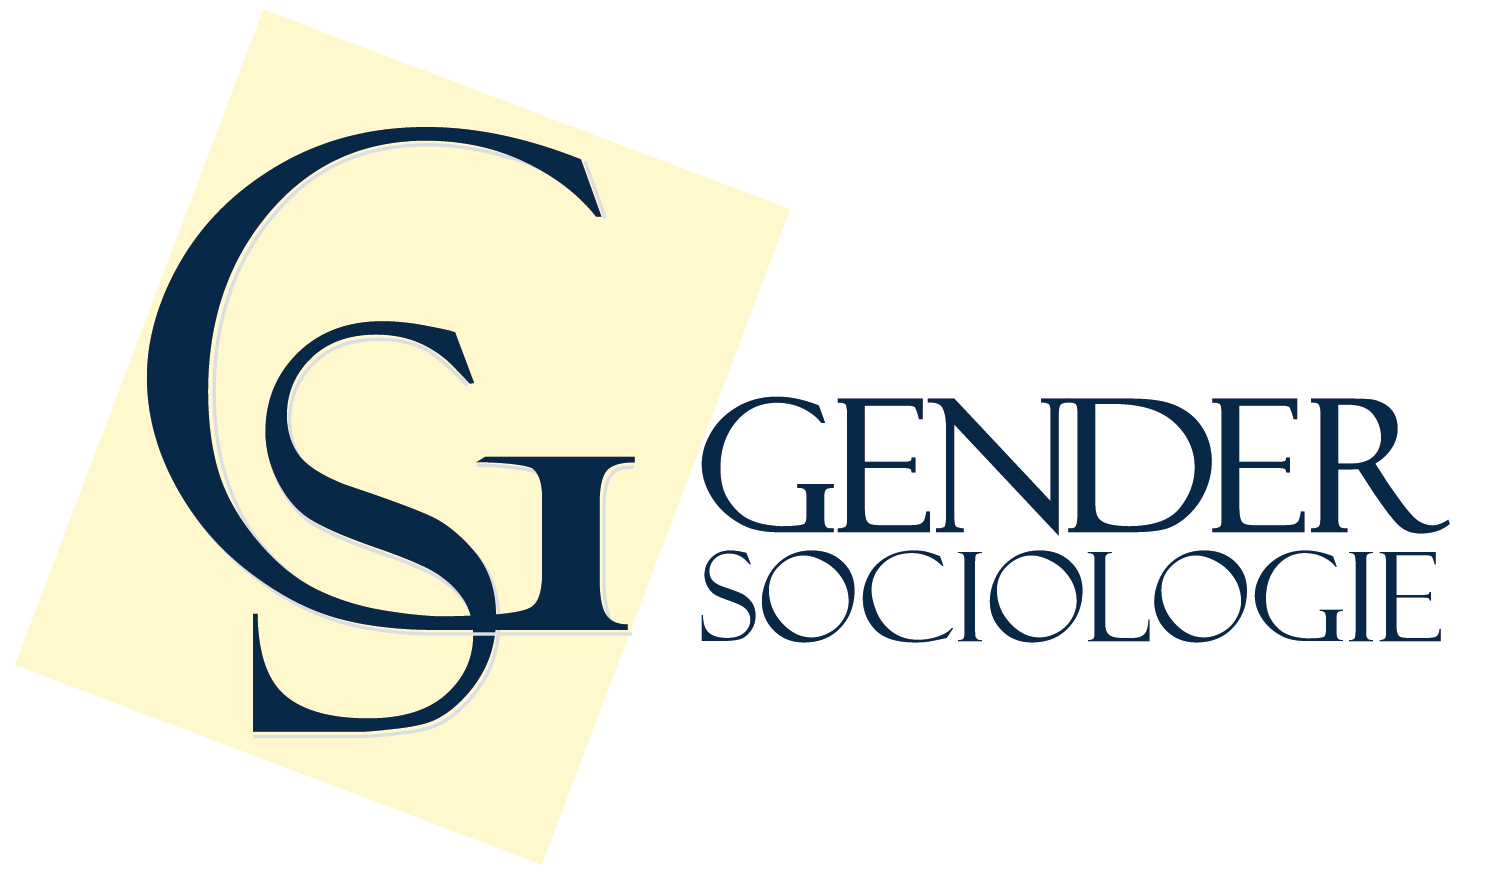 gender sociologie